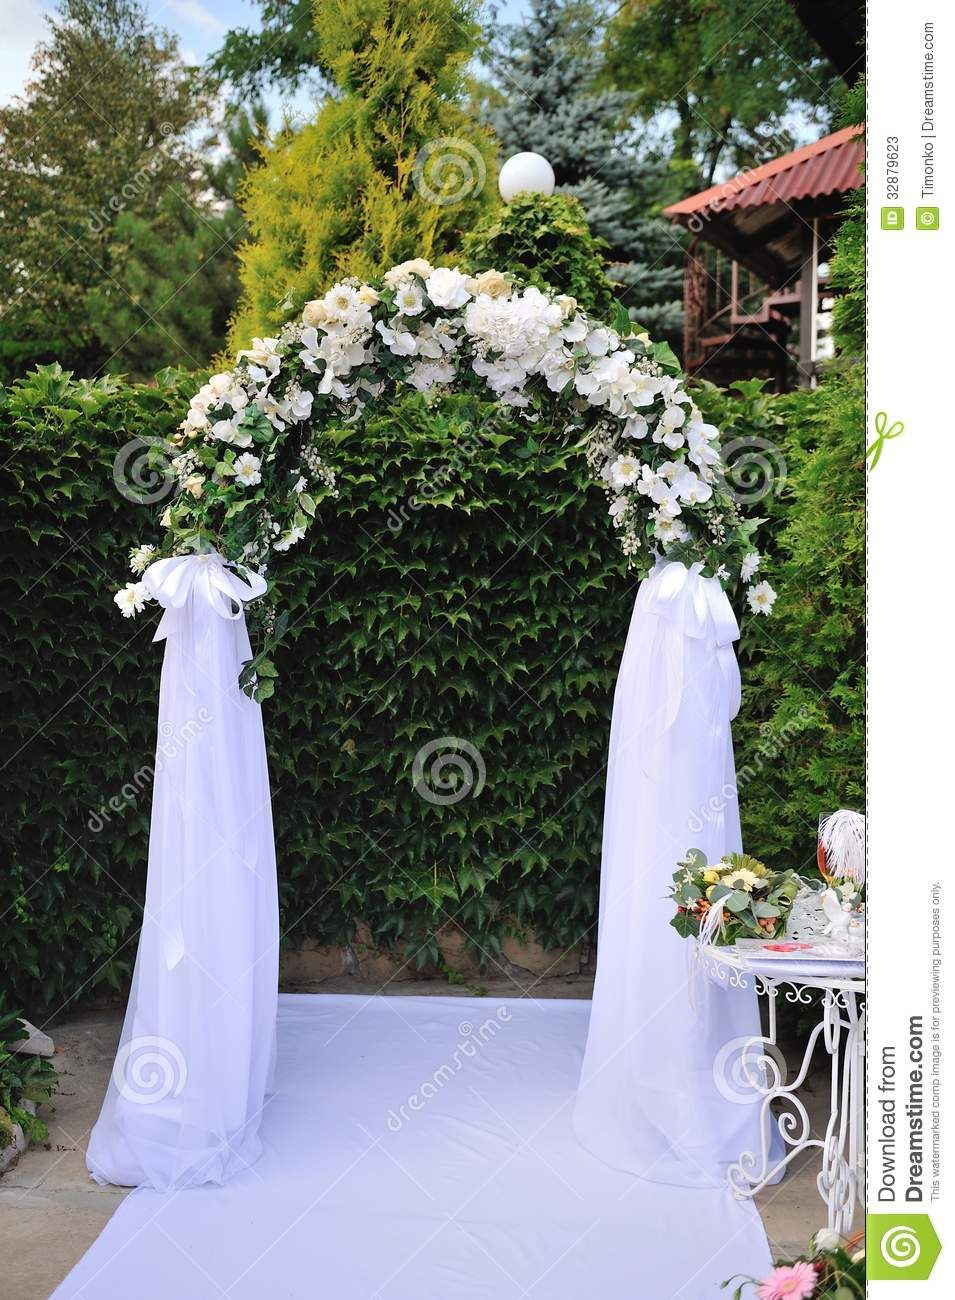 Wedding Arch Decorations Tulle Decorated Wedding Arches Any Of Dream Days Rental Items